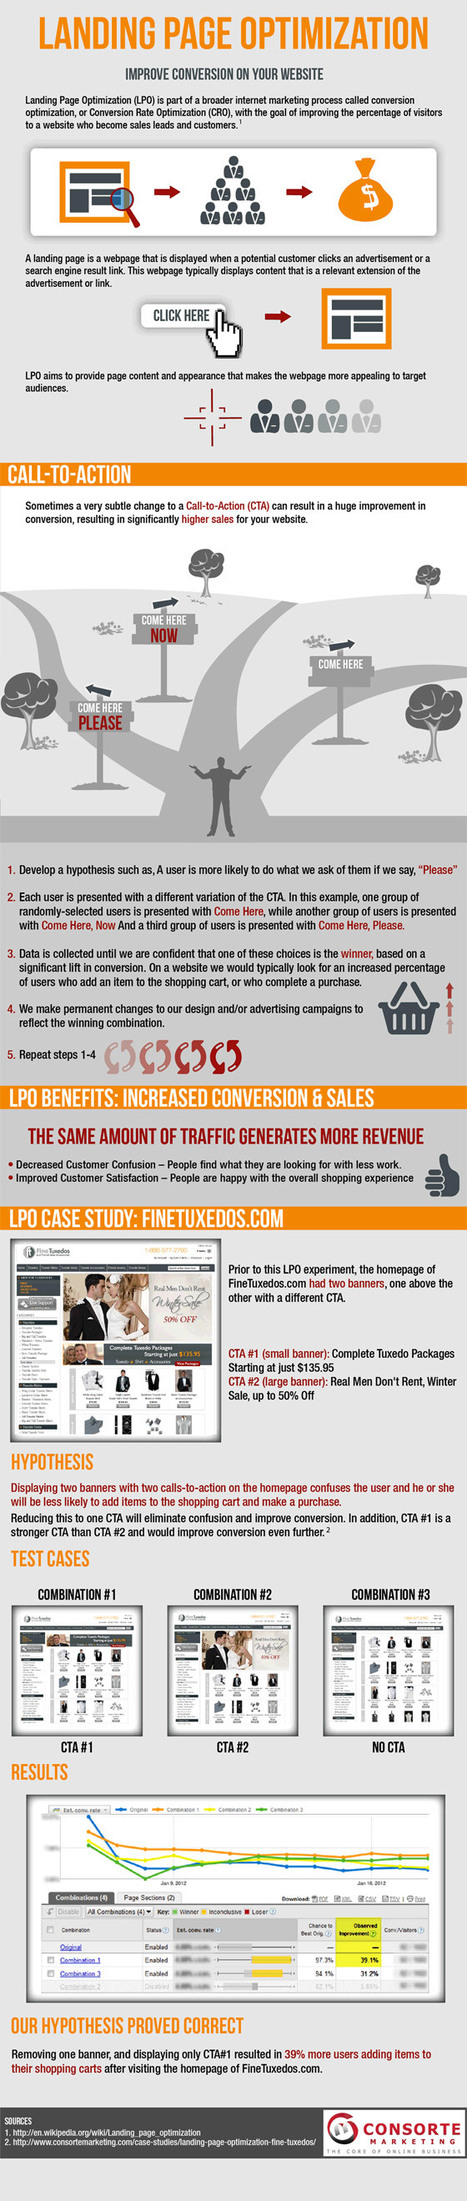 The Landing Page Optimization - Infographic | AtDotCom Social media | Scoop.it